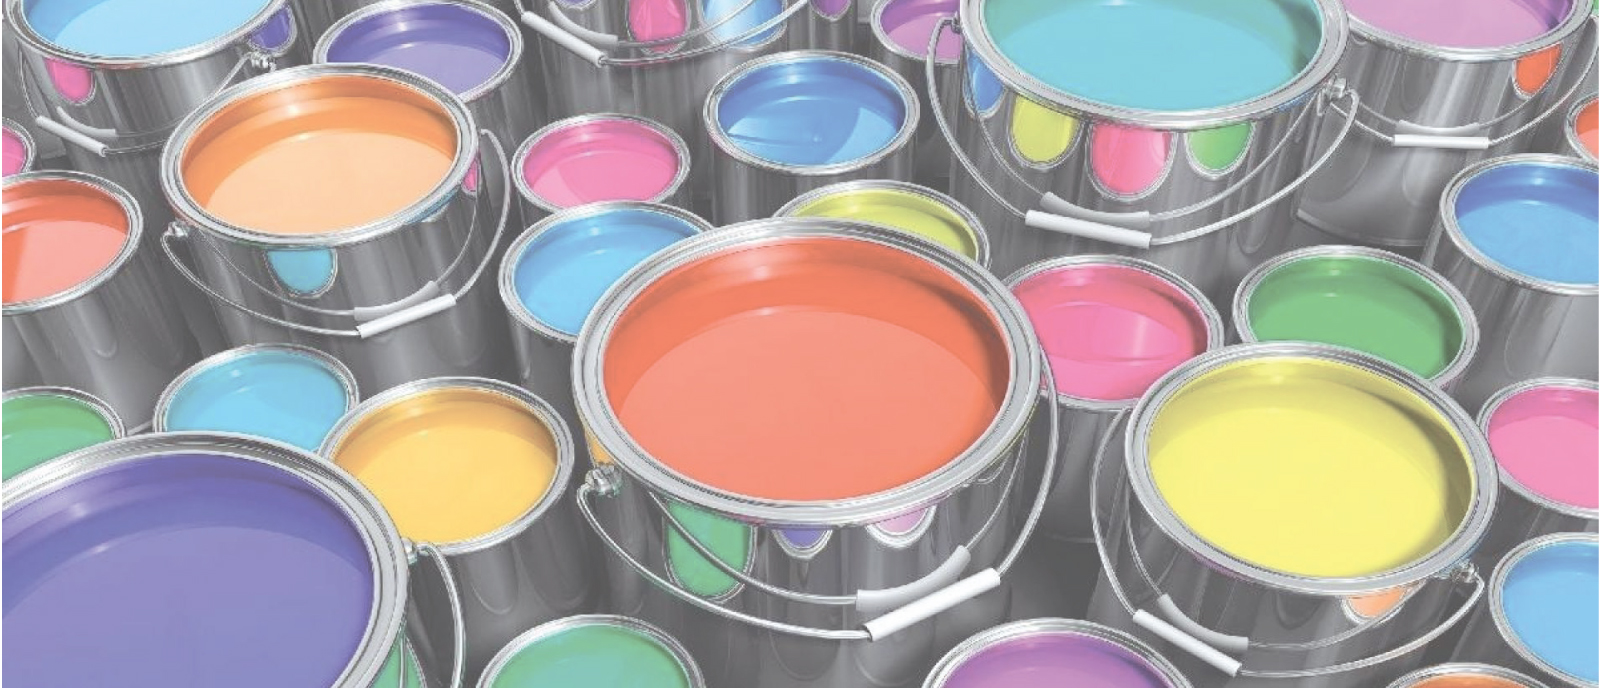 paints-banner - Vibrant Group - Supplier of Waterproofing and